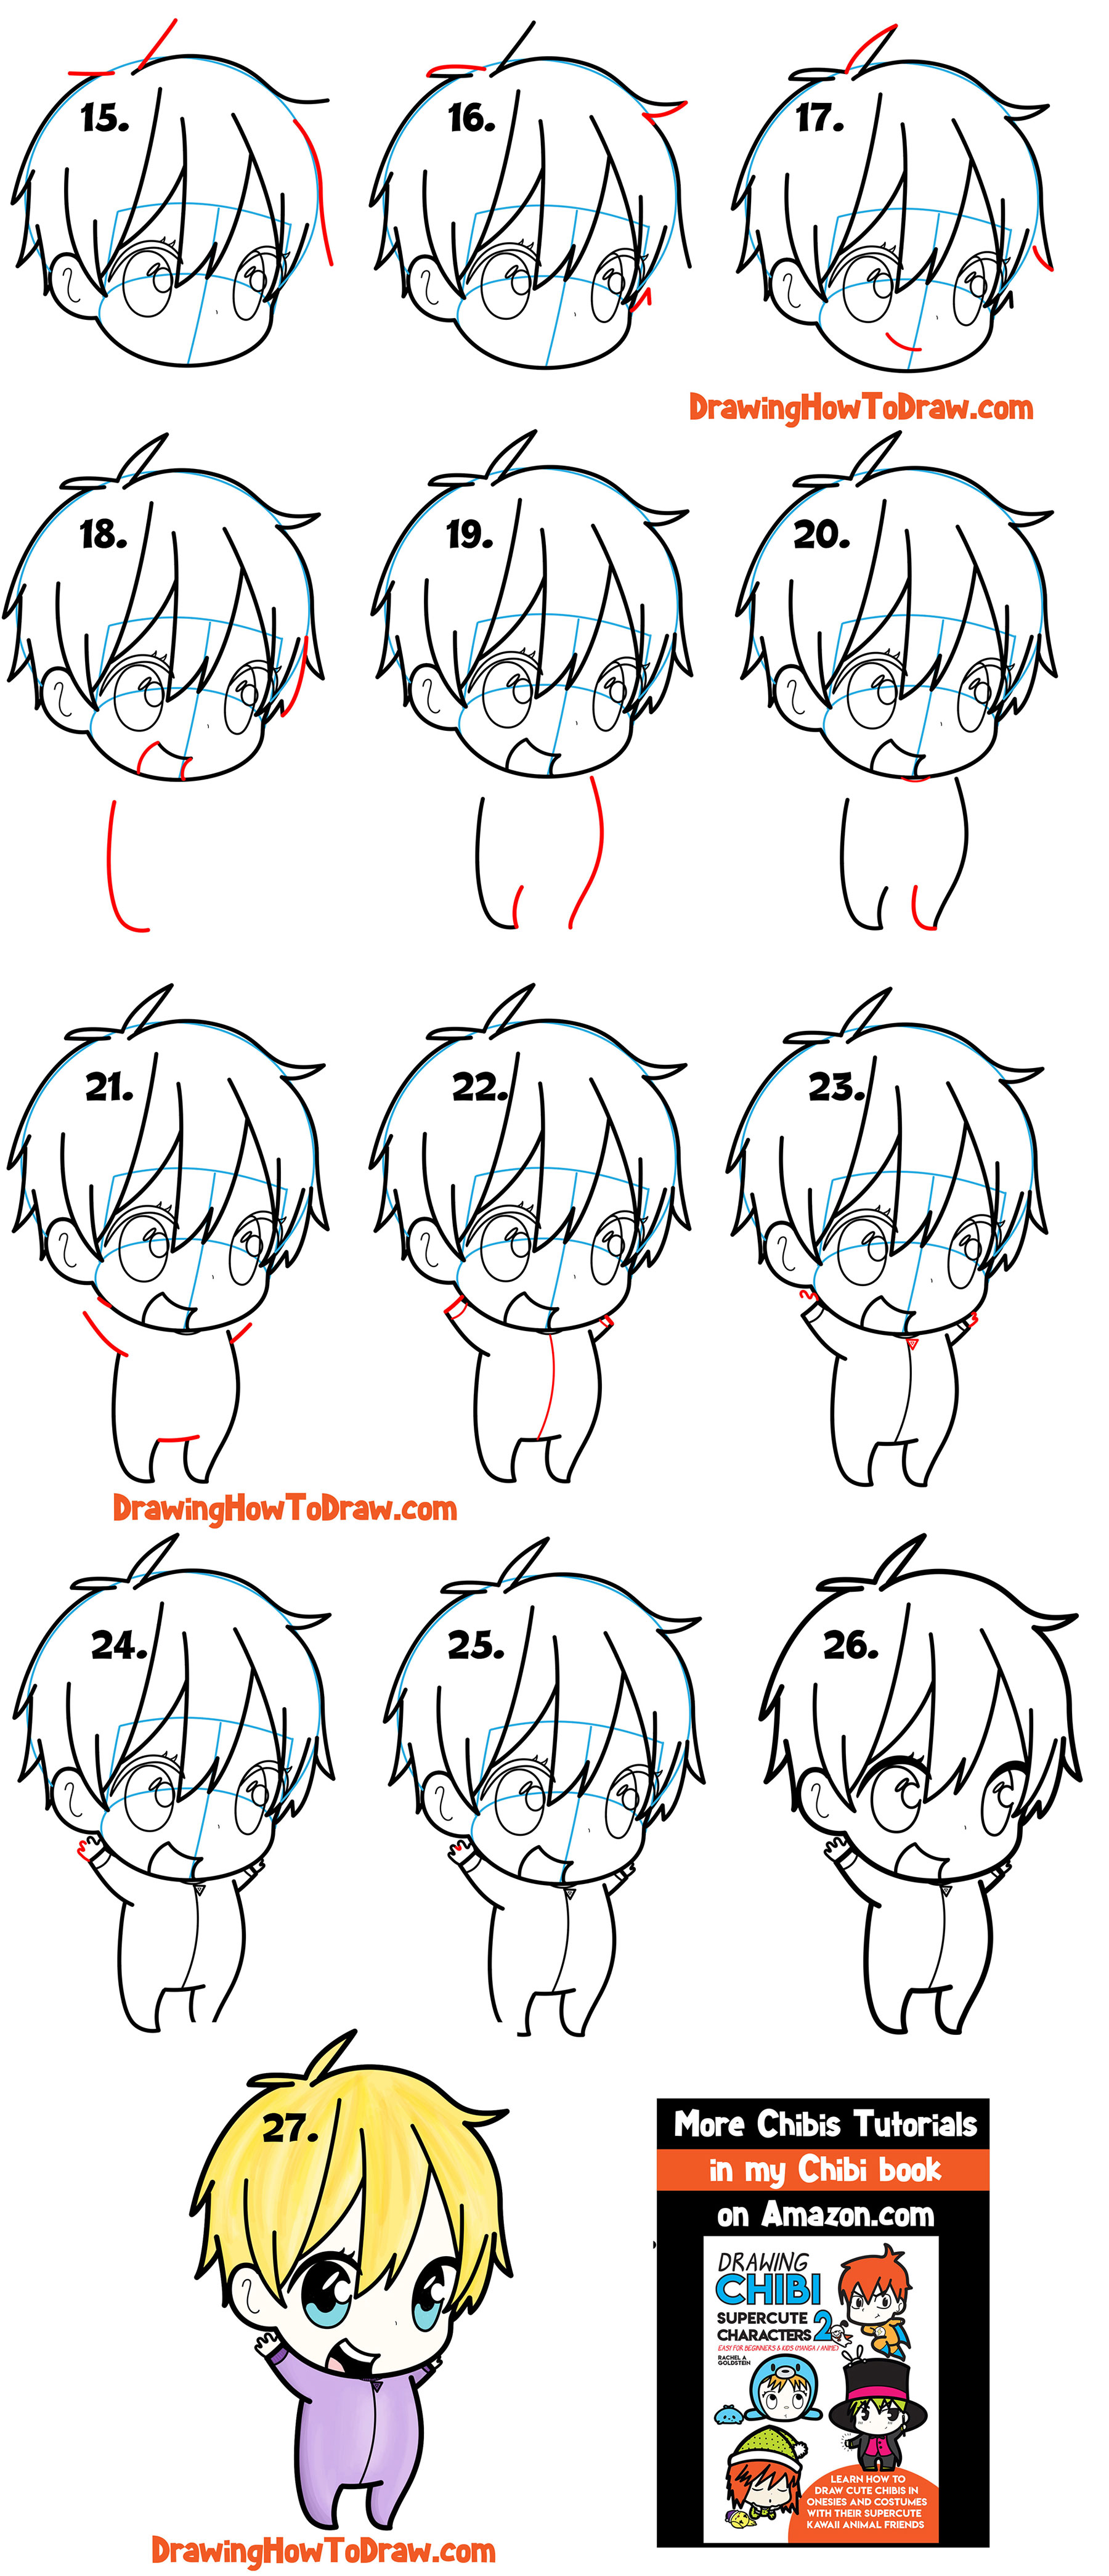 Learn How to Draw a Cute Chibi Boy Simple Steps Drawing Lesson for Kids & Beginners